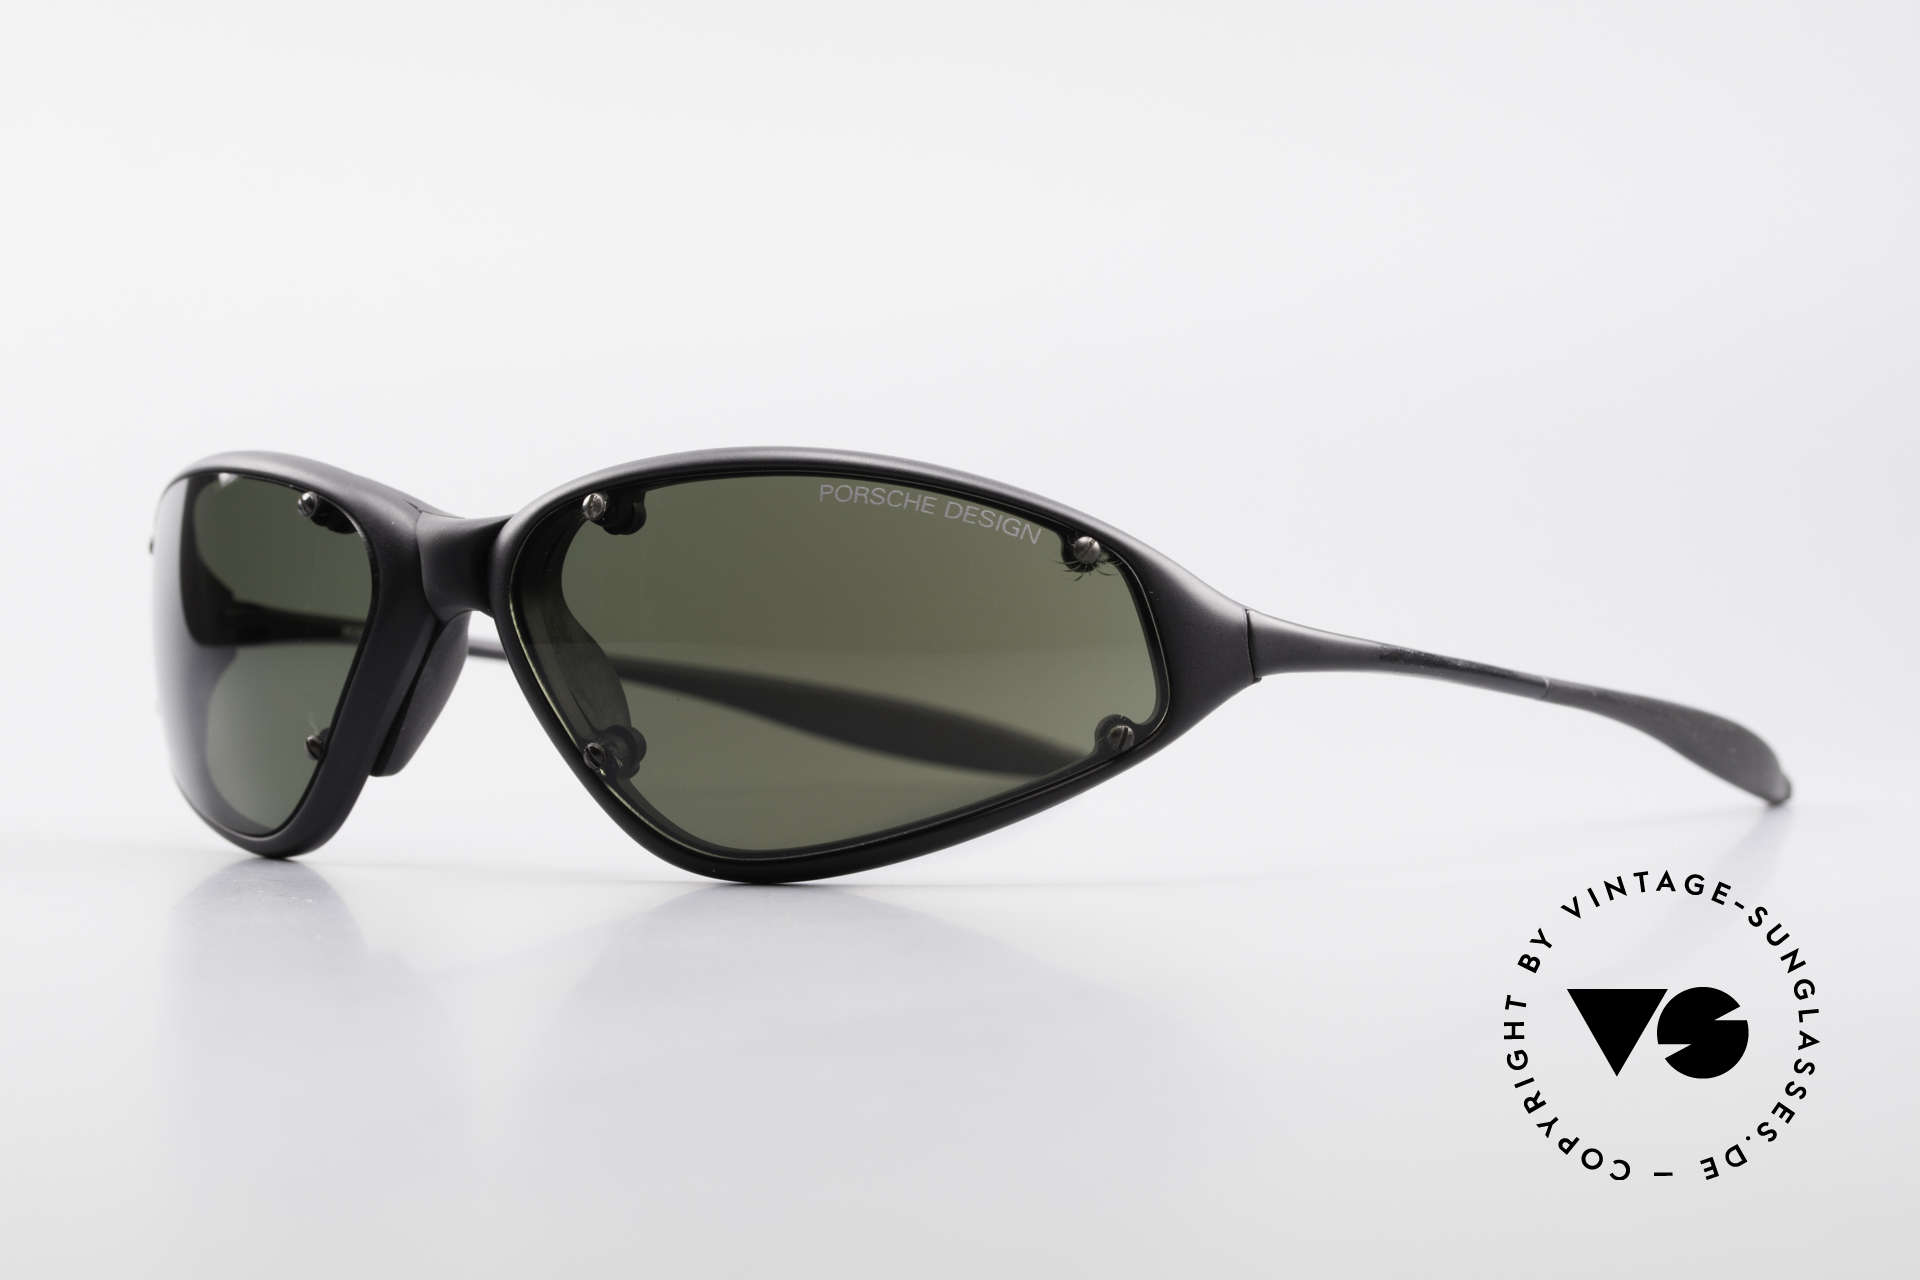 Porsche P0120 Rare 90's Sports Sunglasses, wrap around sunglass' design from app. 1998, Made for Men